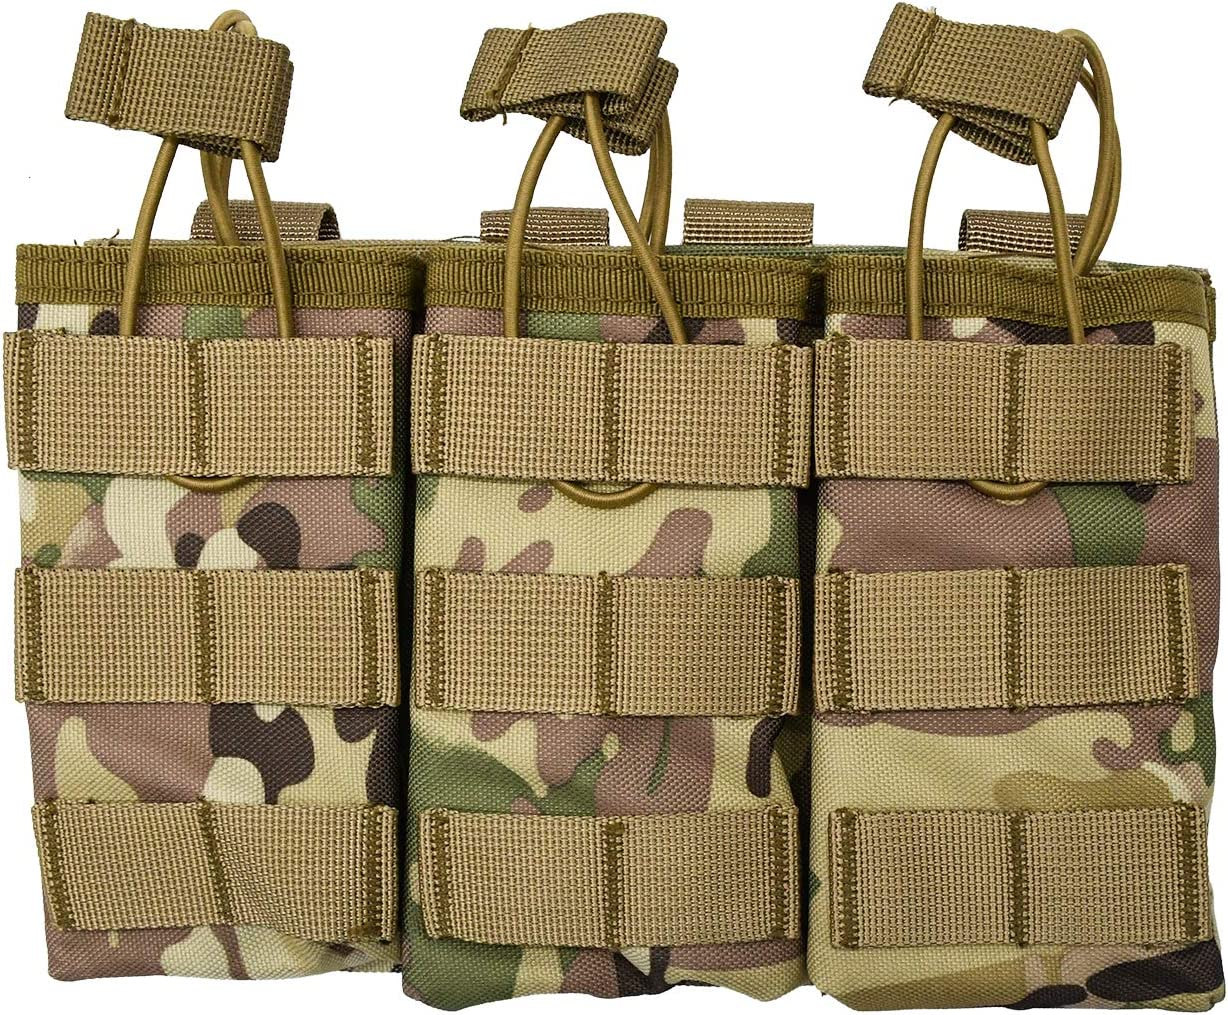 Magazine Pouch LETUZI New item Popular standard Open-Top Mag Tactical Holder Molle